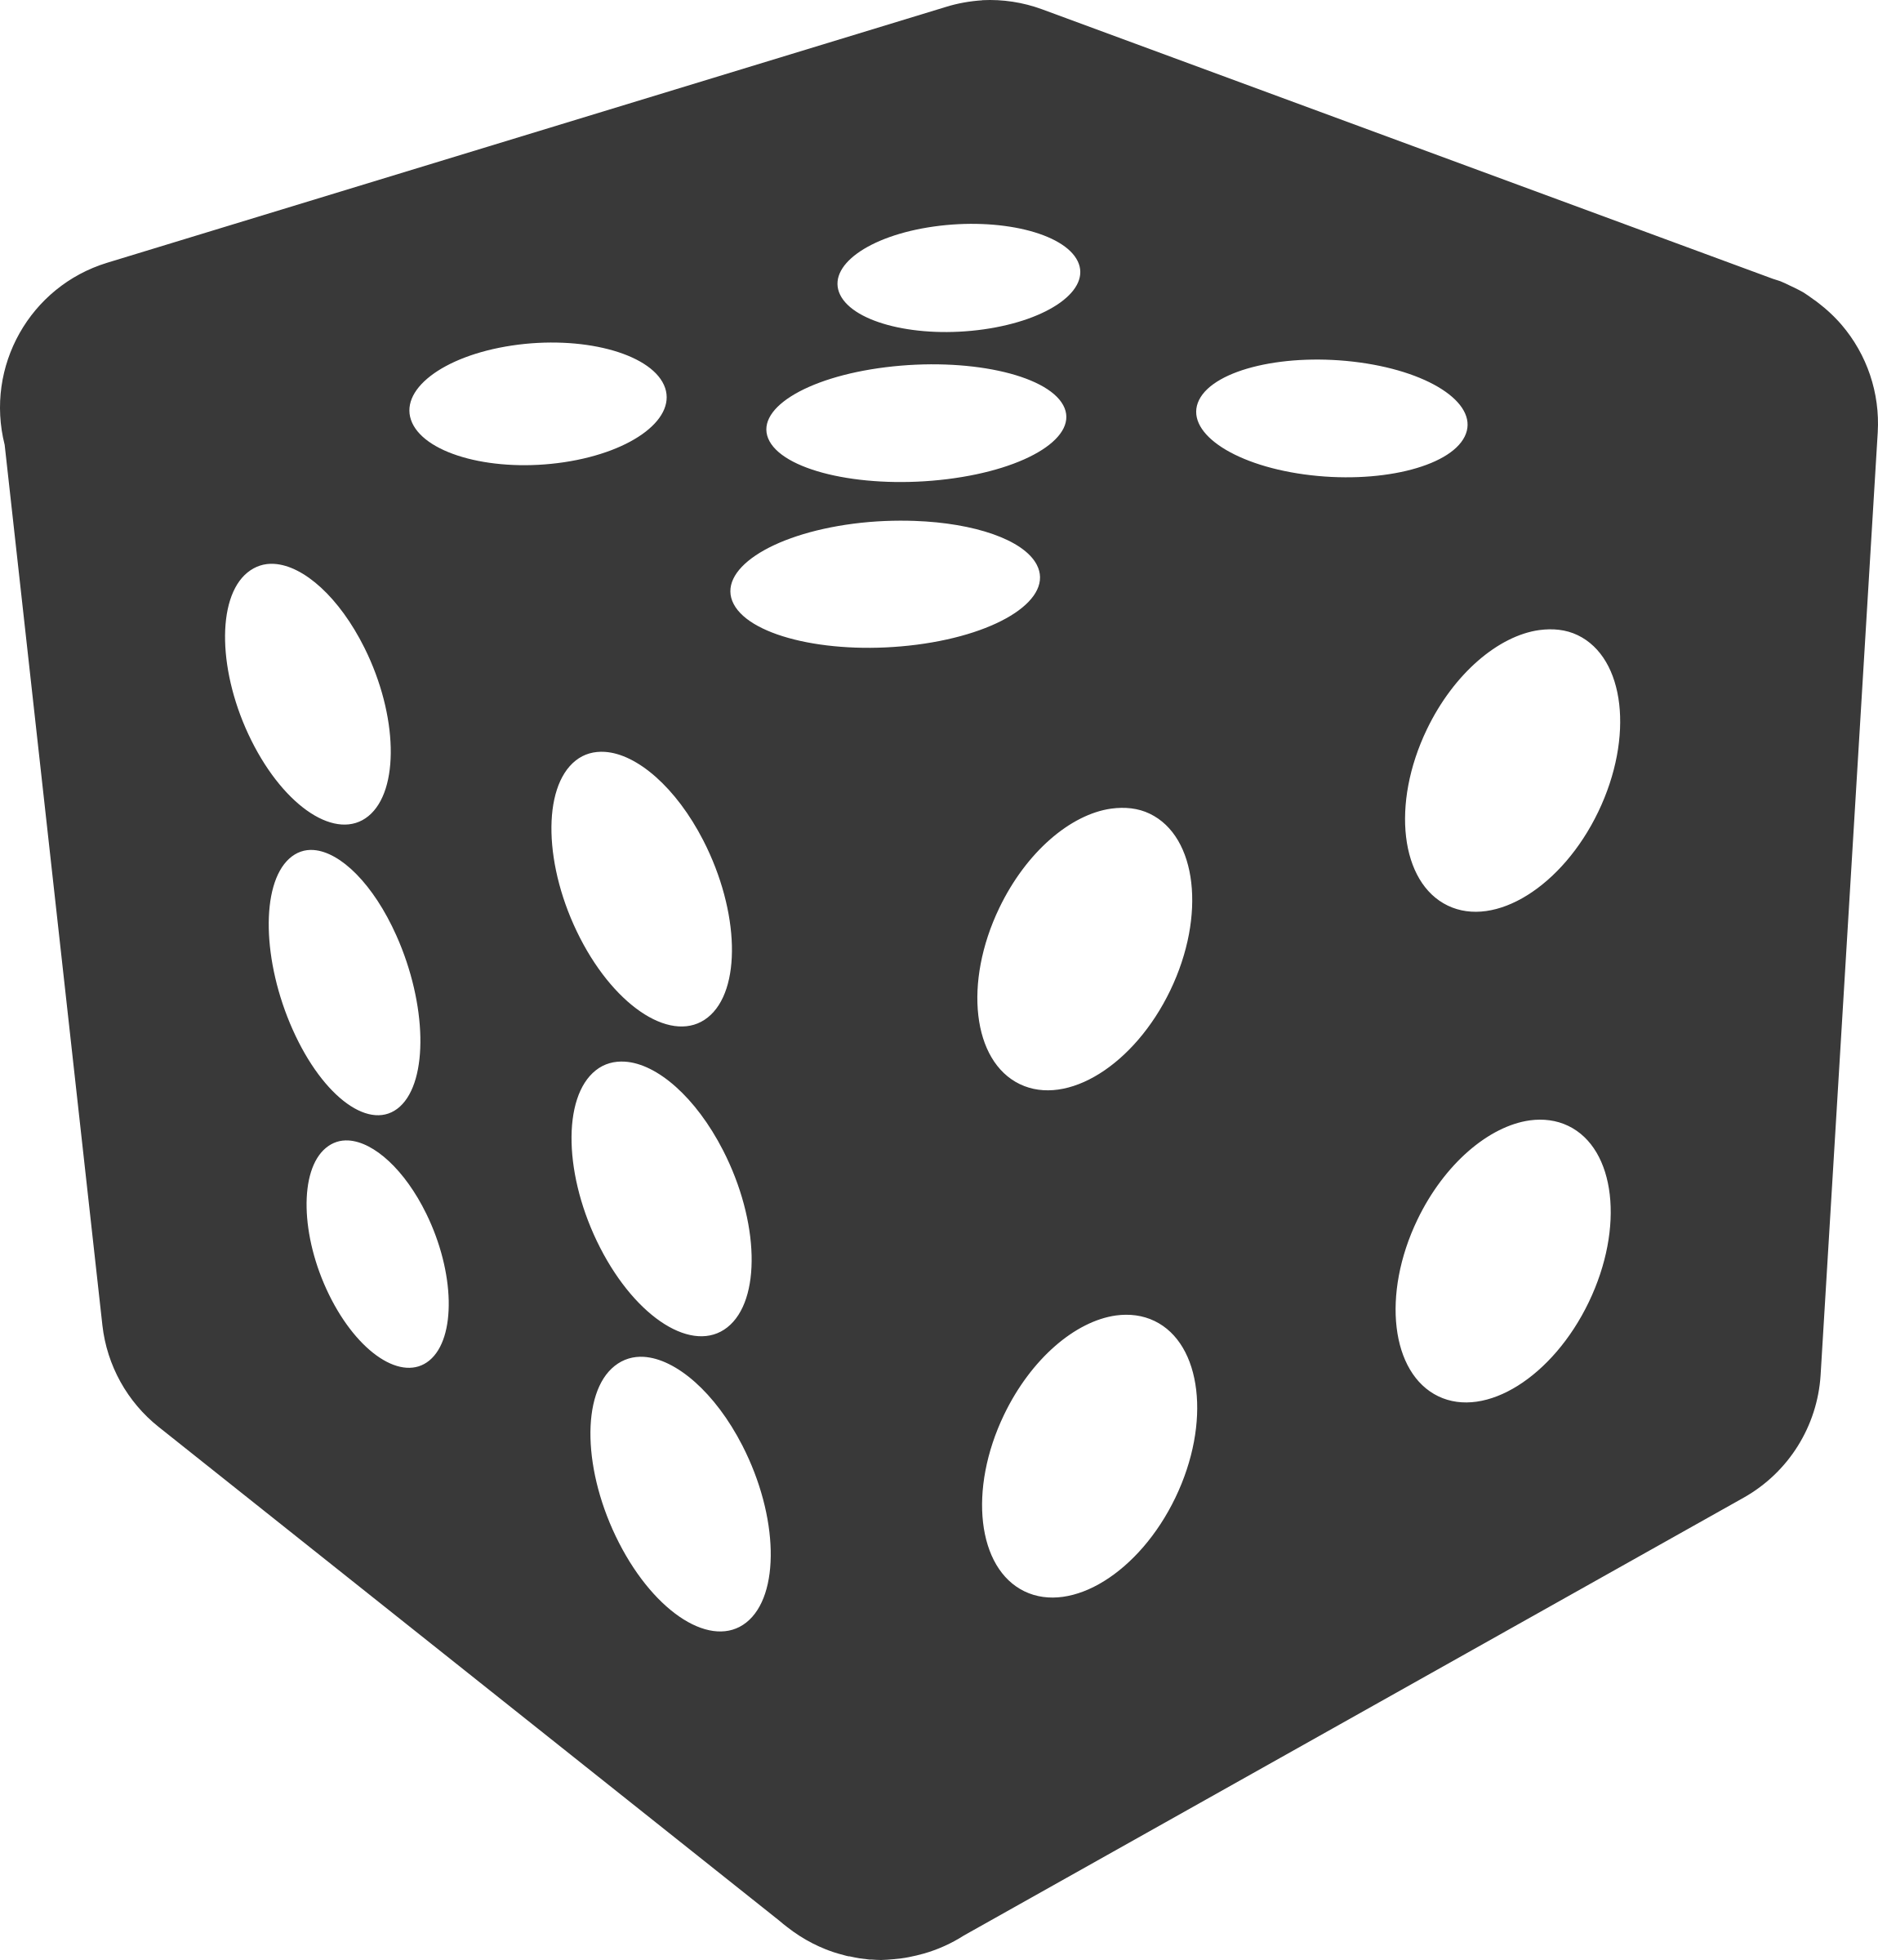 Dice clipart black. Clip arts for free